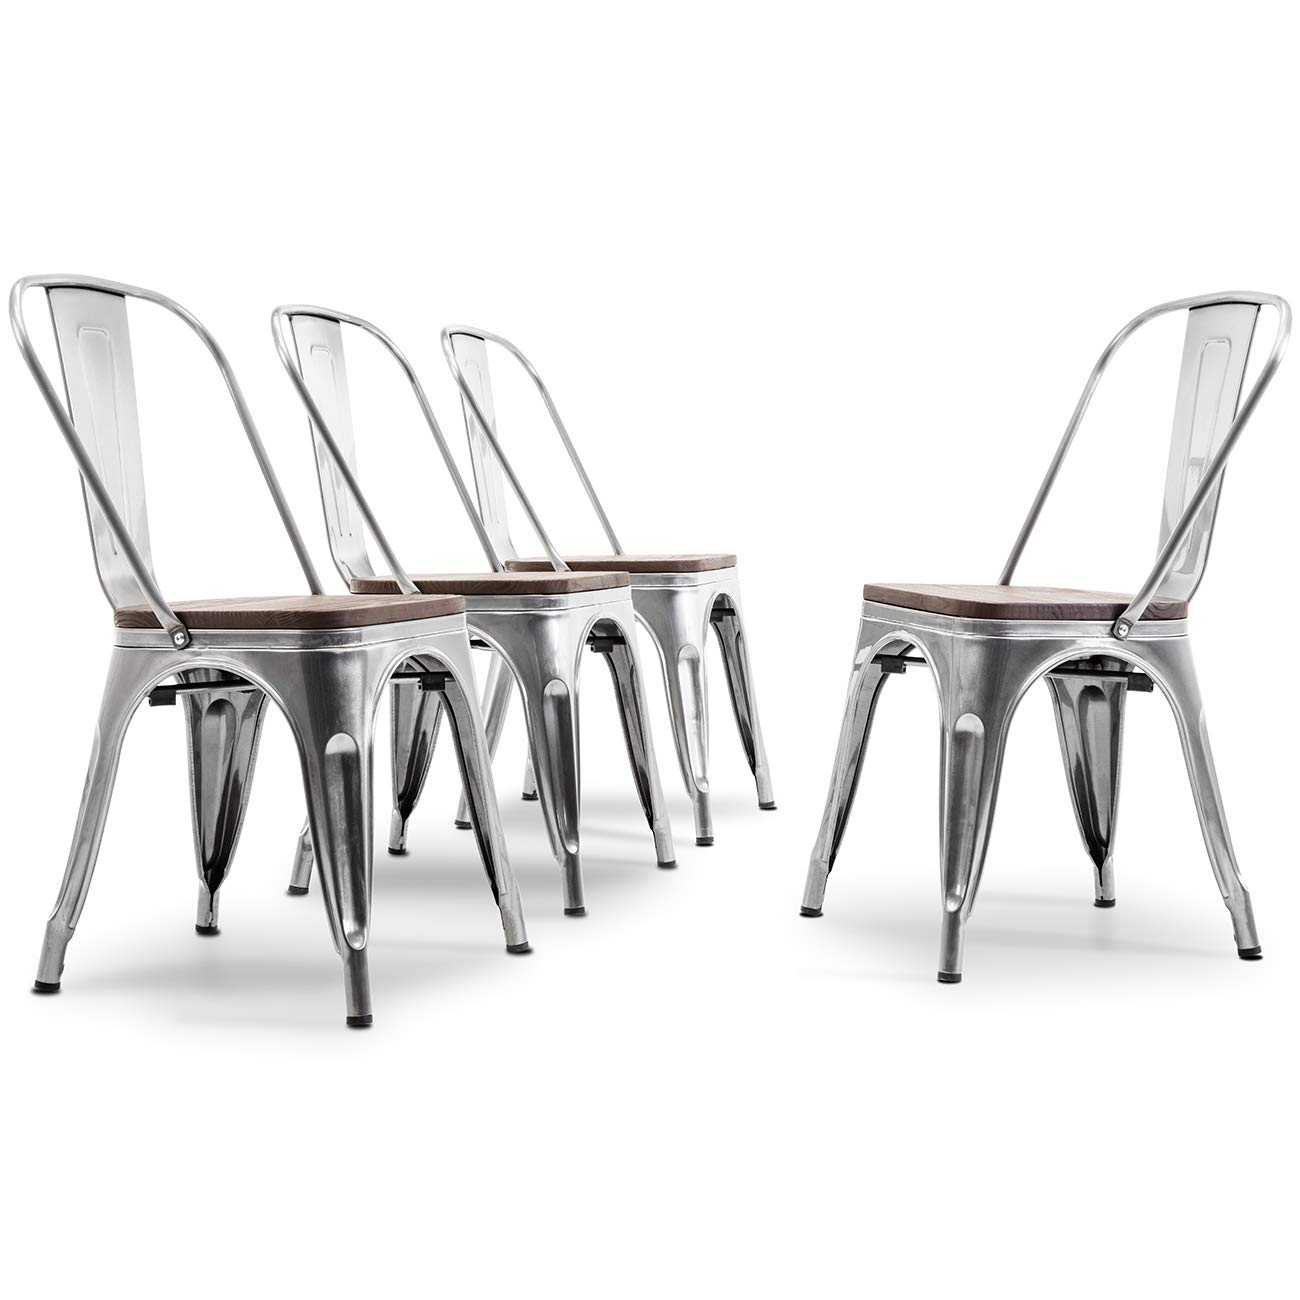 BELLEZE Set of 4 Dining Chairs Backrest Modern Stackable w Wood Seat Stool, Gunmetal